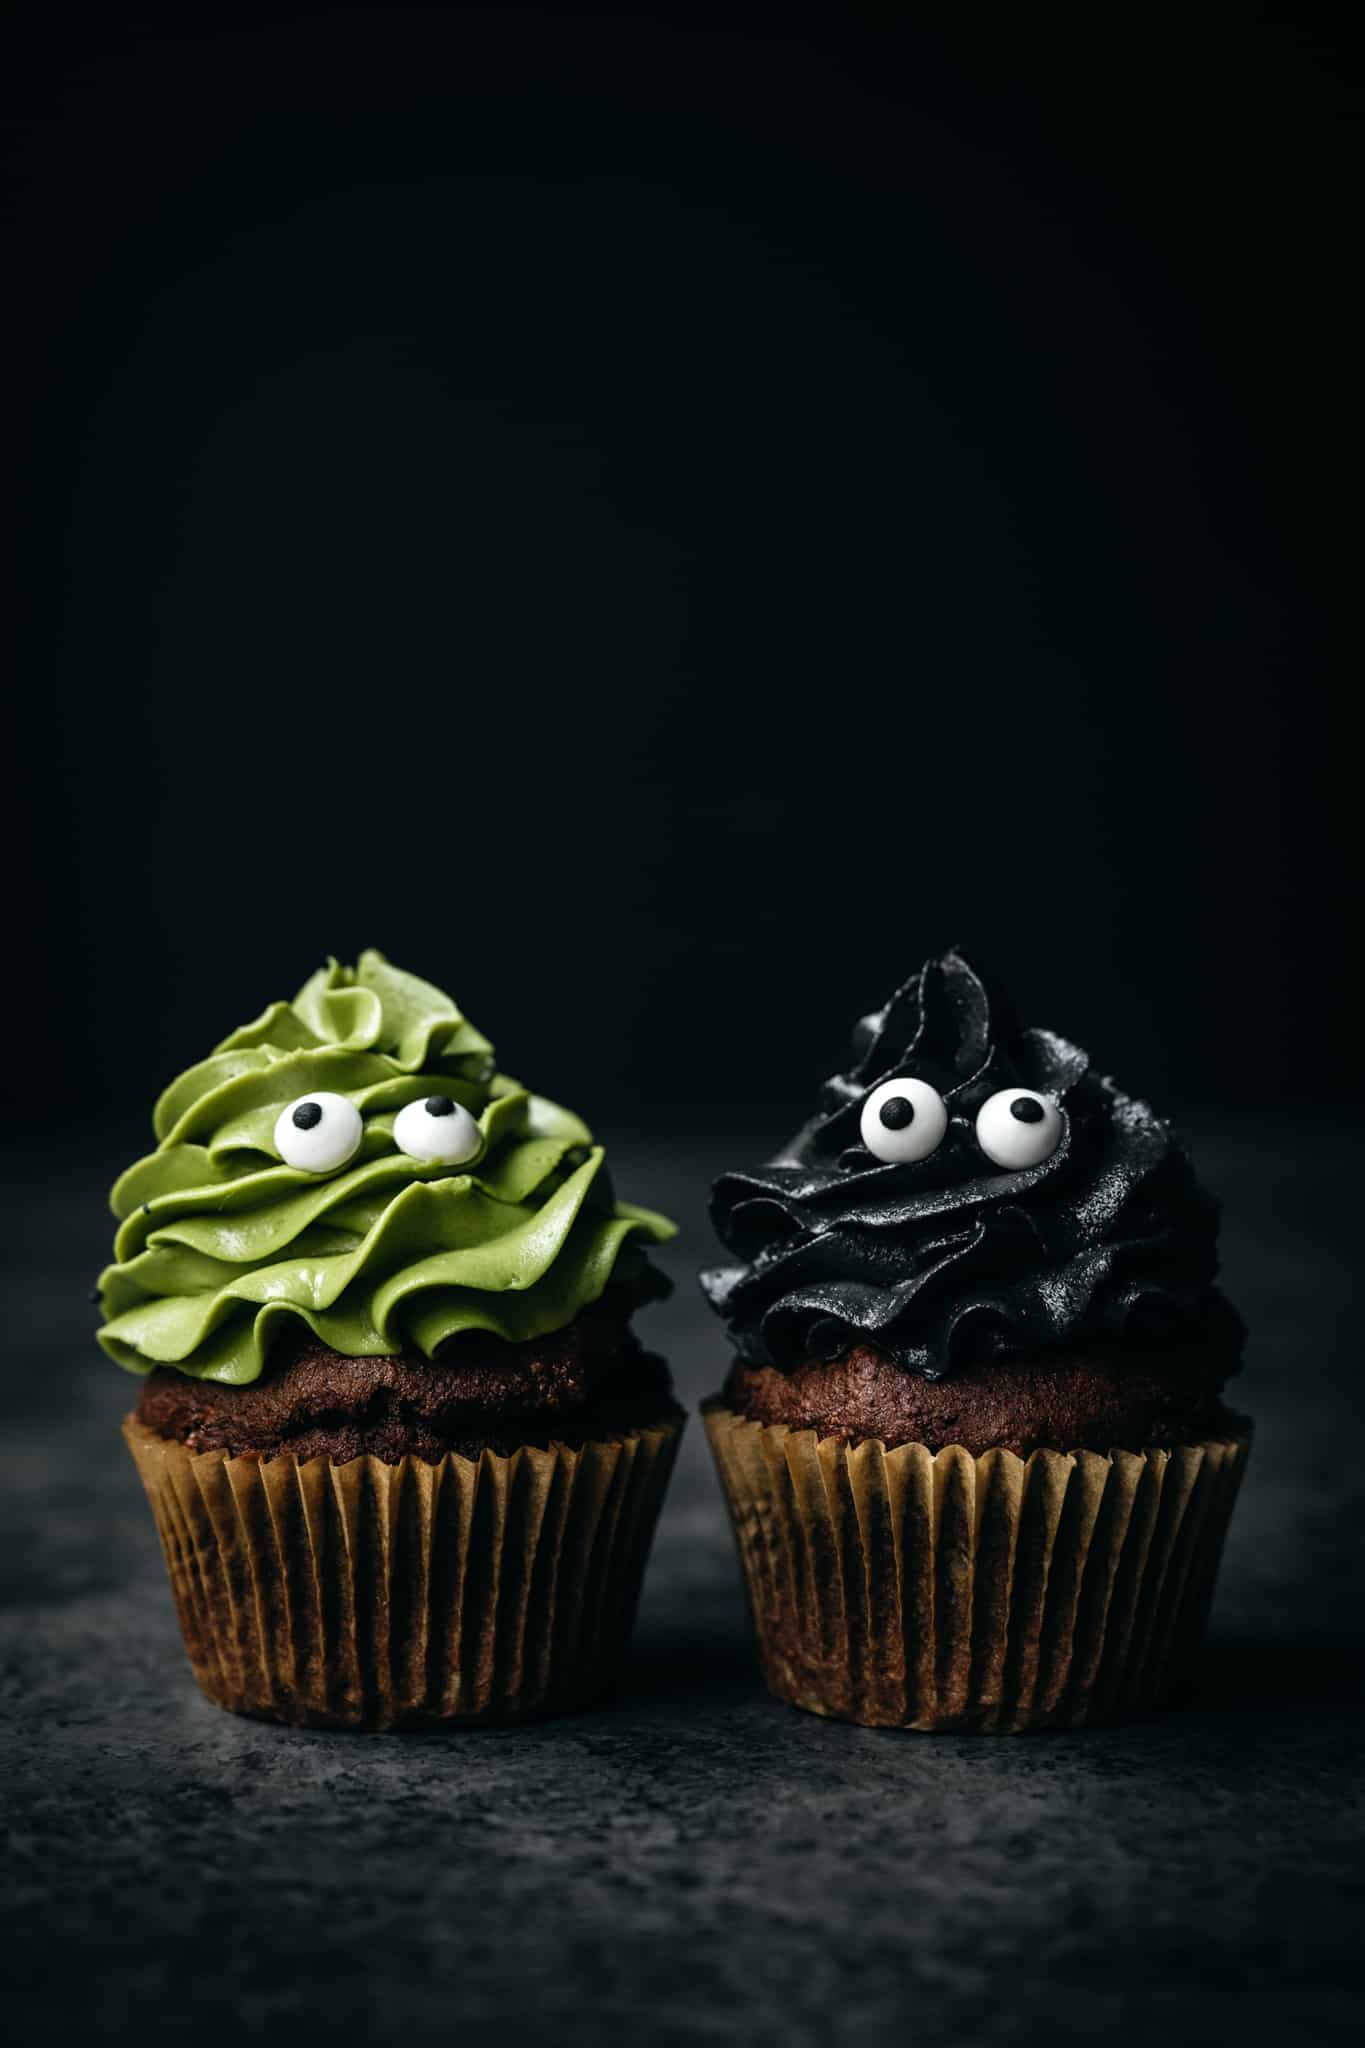 side view of two vegan chocolate cupcakes topped with naturally colored frosting in green and black from charcoal